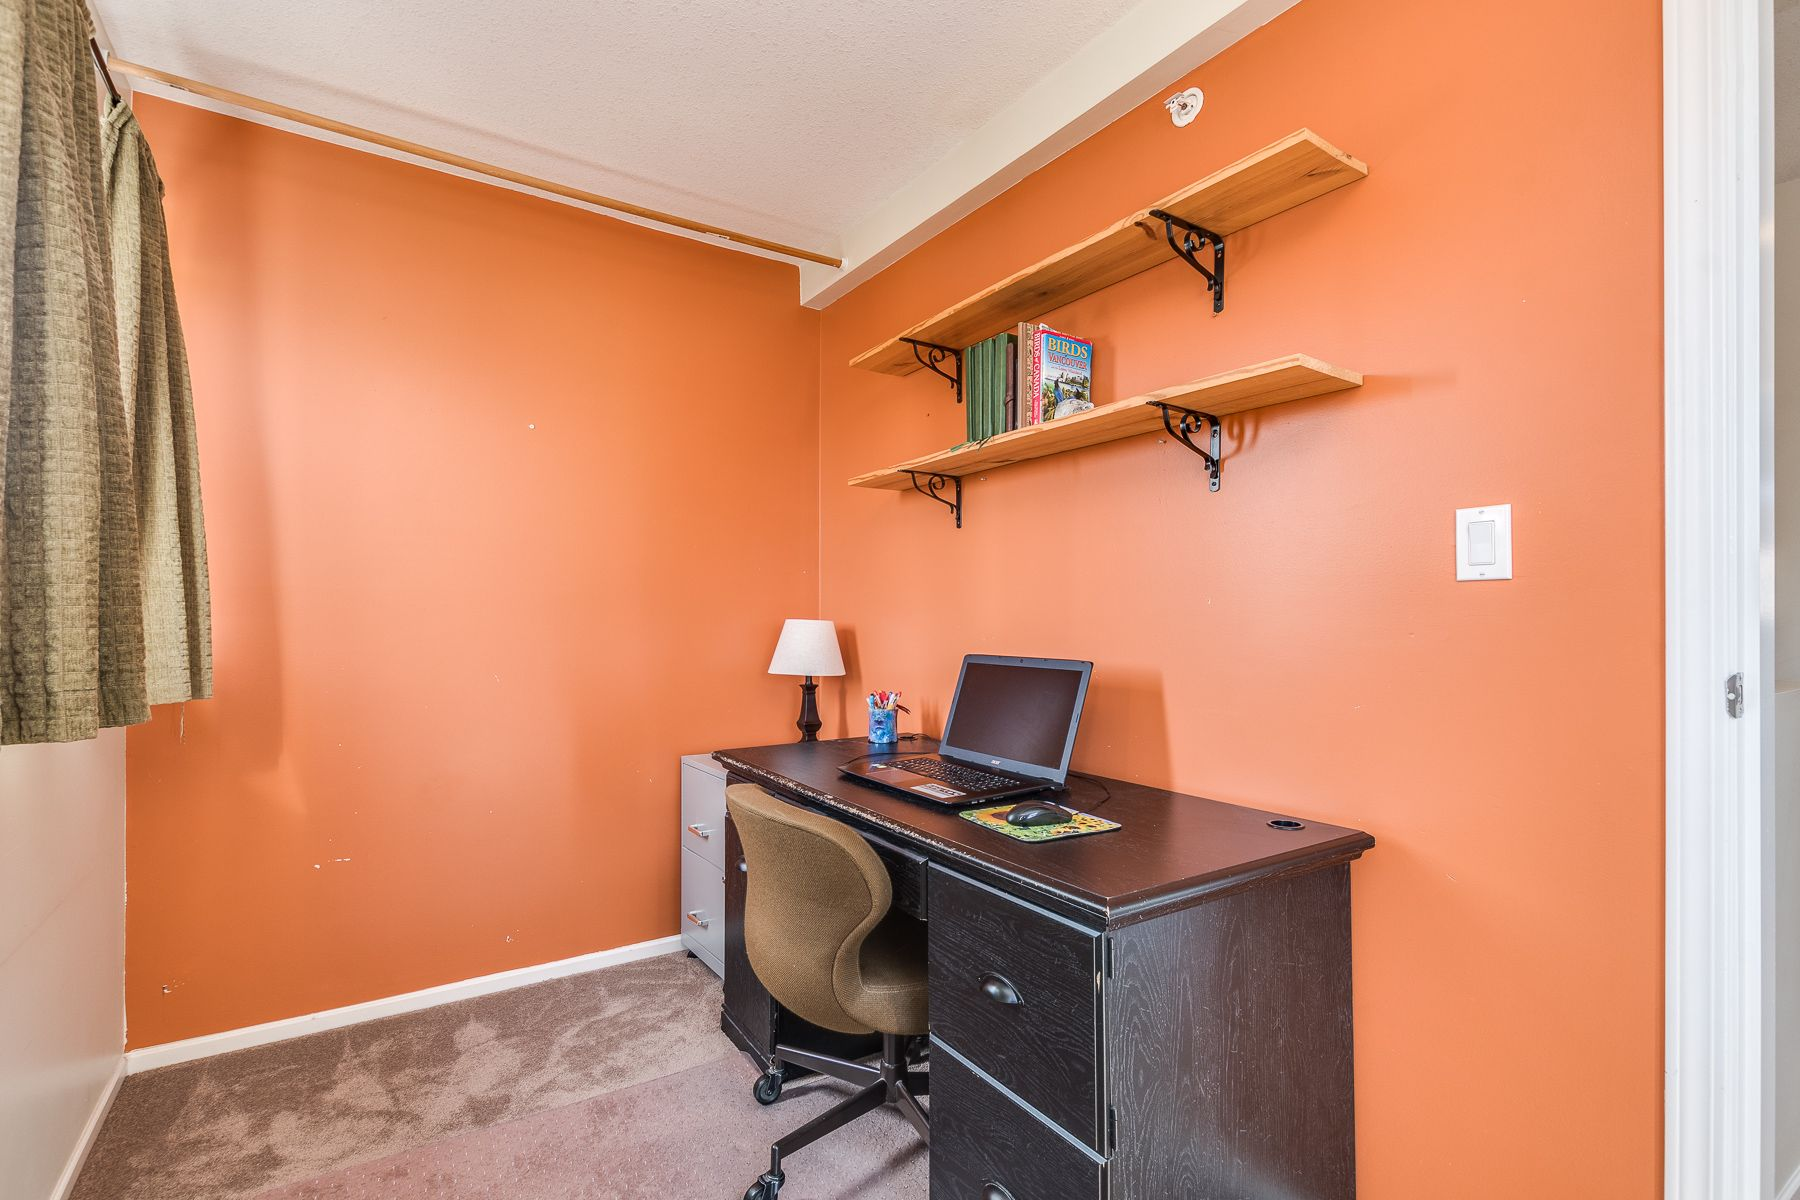 Photo 30: Photos: 7-2389 Charles St in Vancouver: Grandview Woodland Townhouse for sale (Vancouver East)